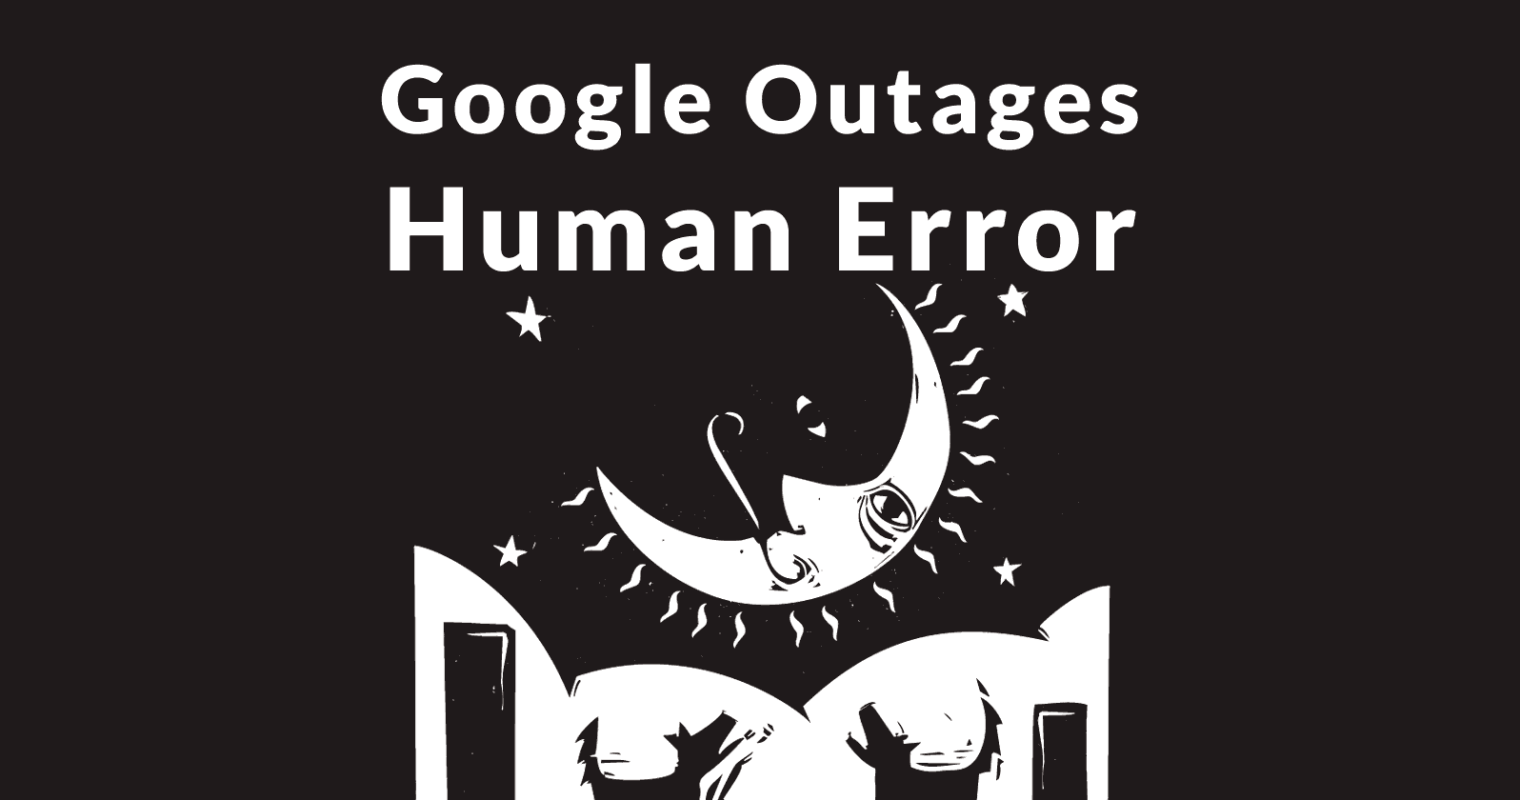 April 2019 Google Outages Due to Human Error